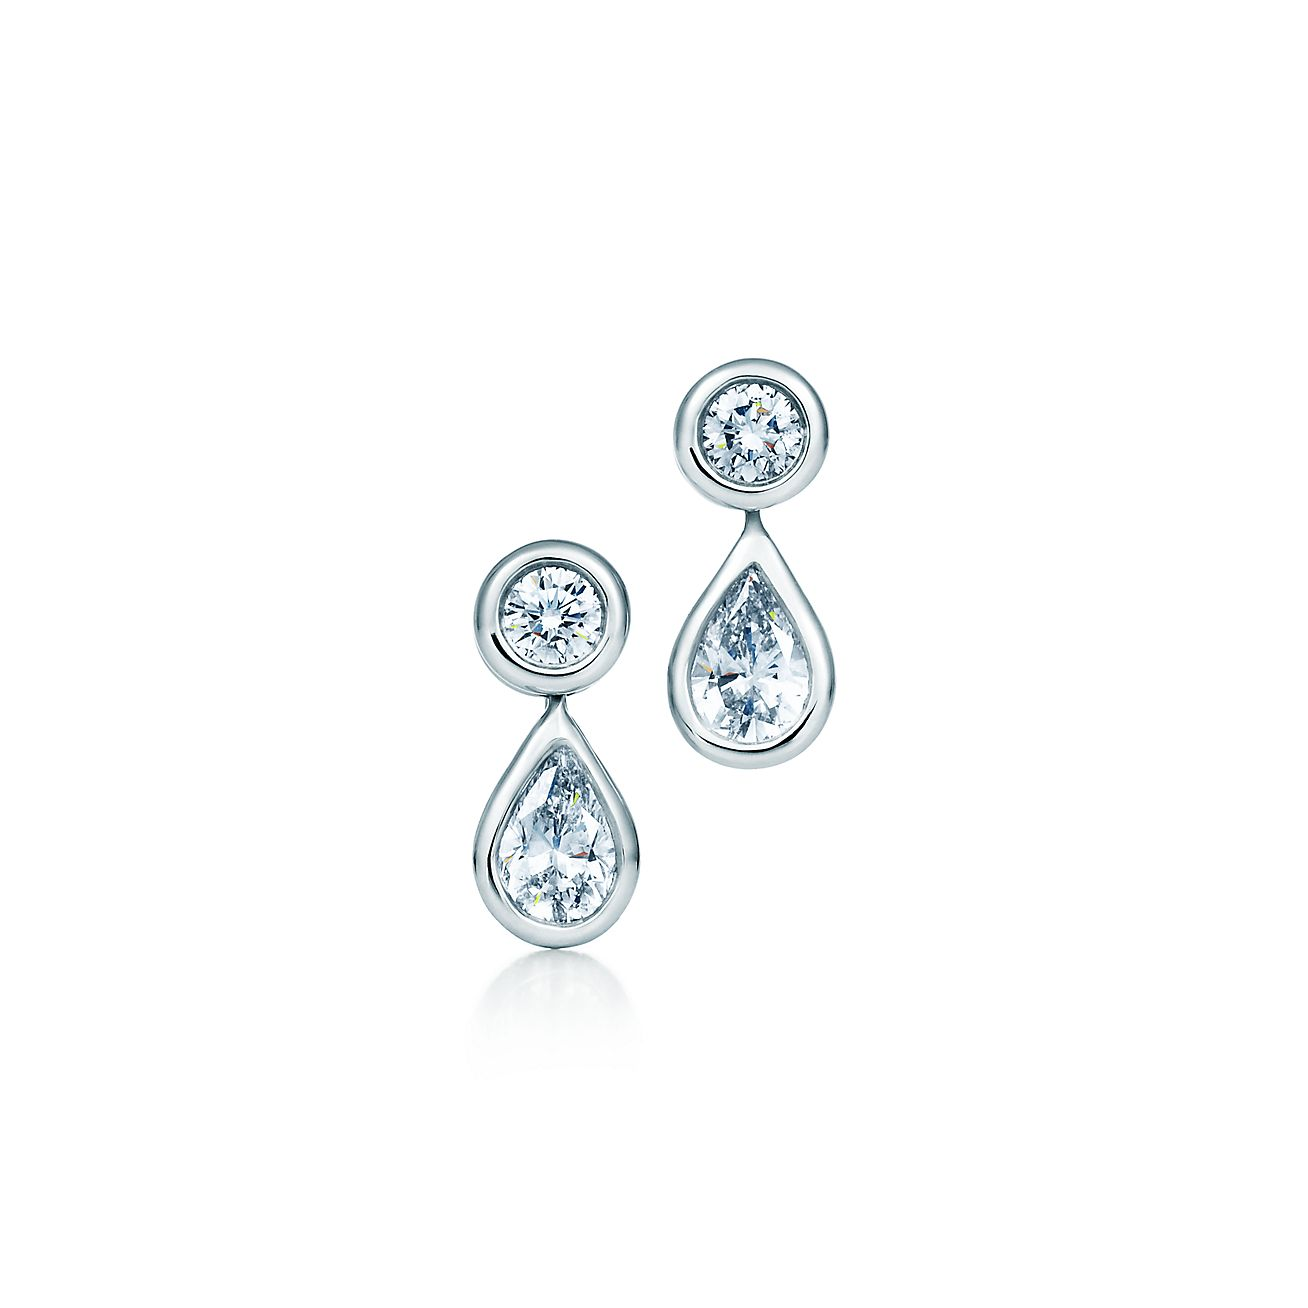 zoom jewellery earrings diamond platinum drop